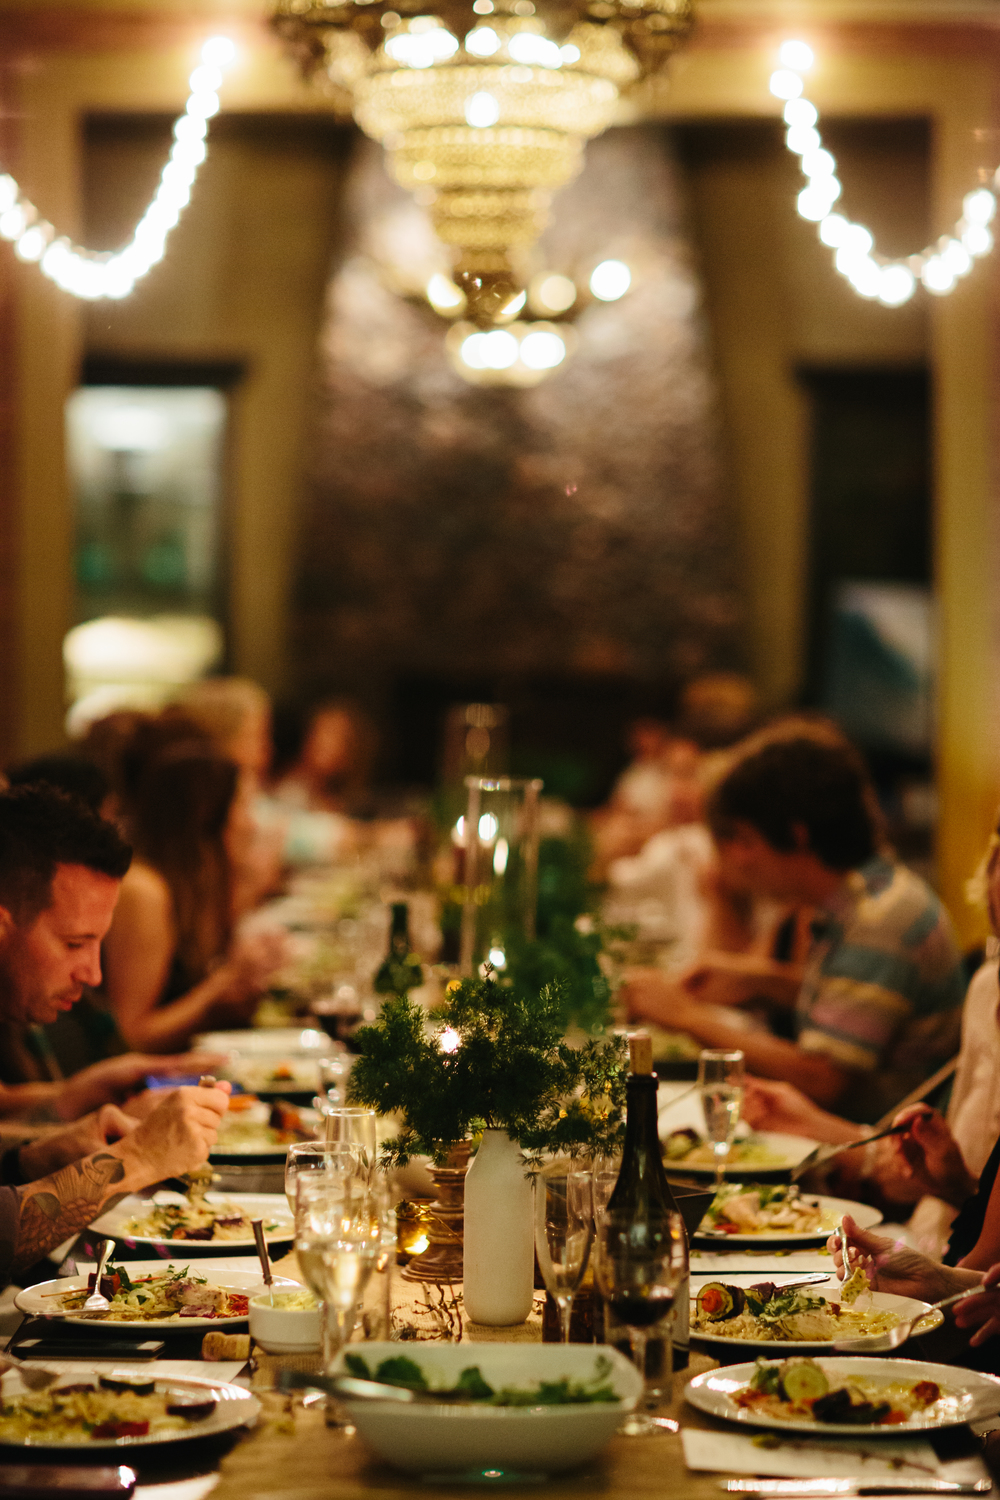 table dinnerscene vertical.JPG